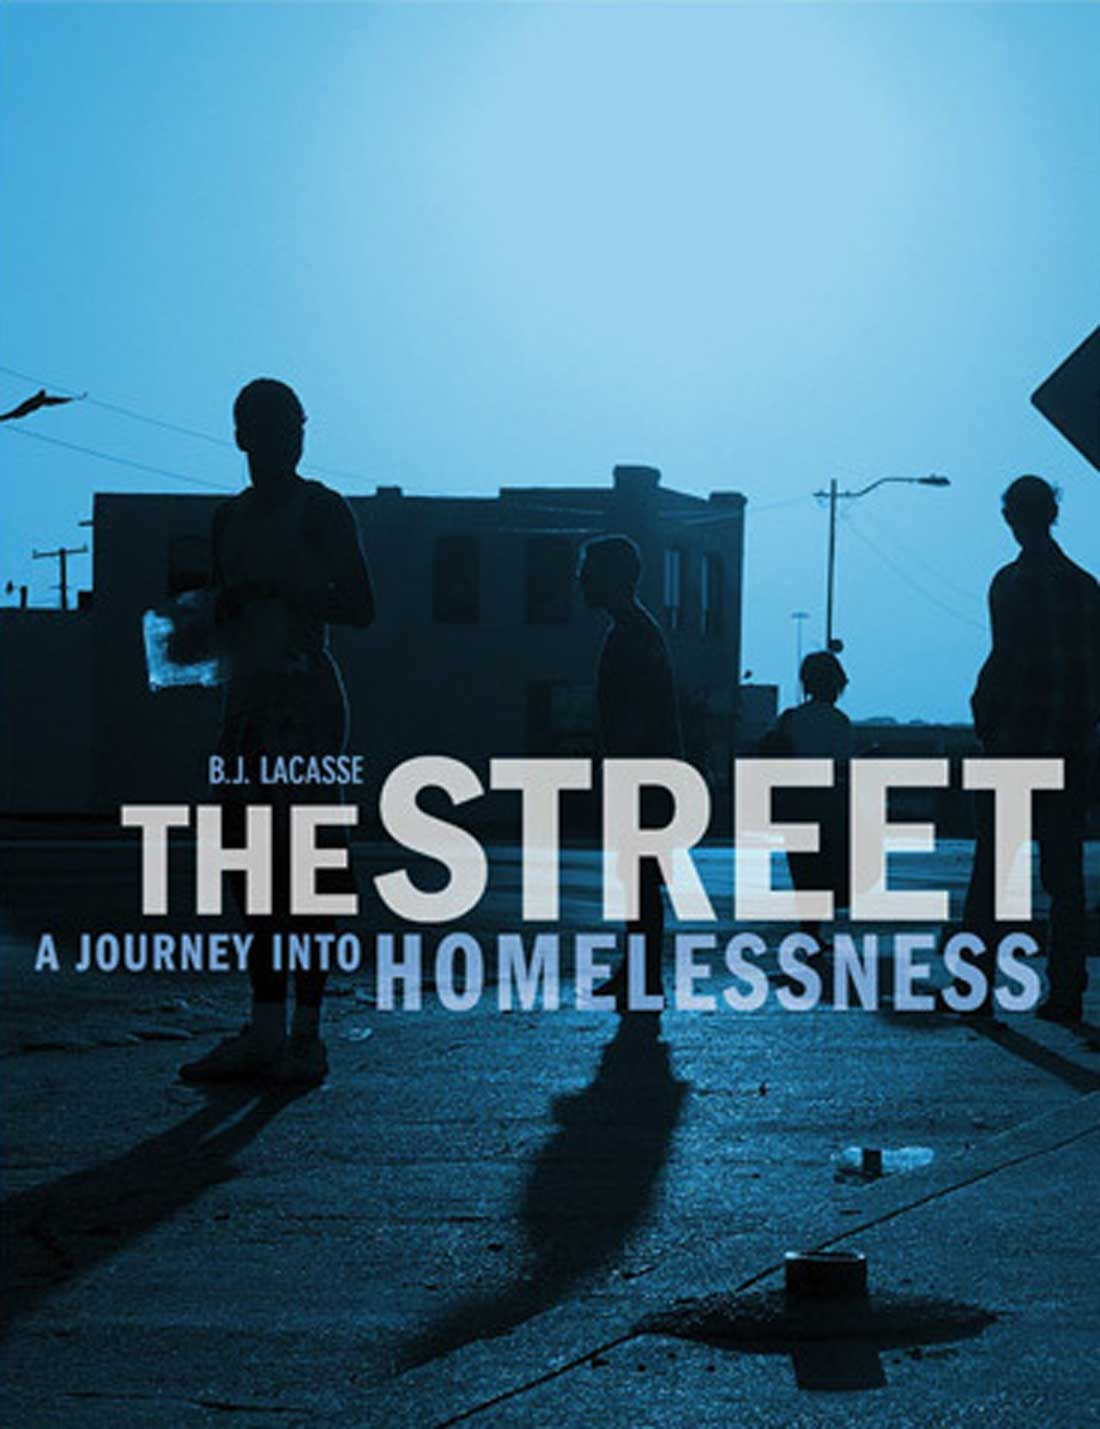 The Street: A Journey into Homelessness by B.J. Lacasse; TCU Press; $29.95; 103 pps.